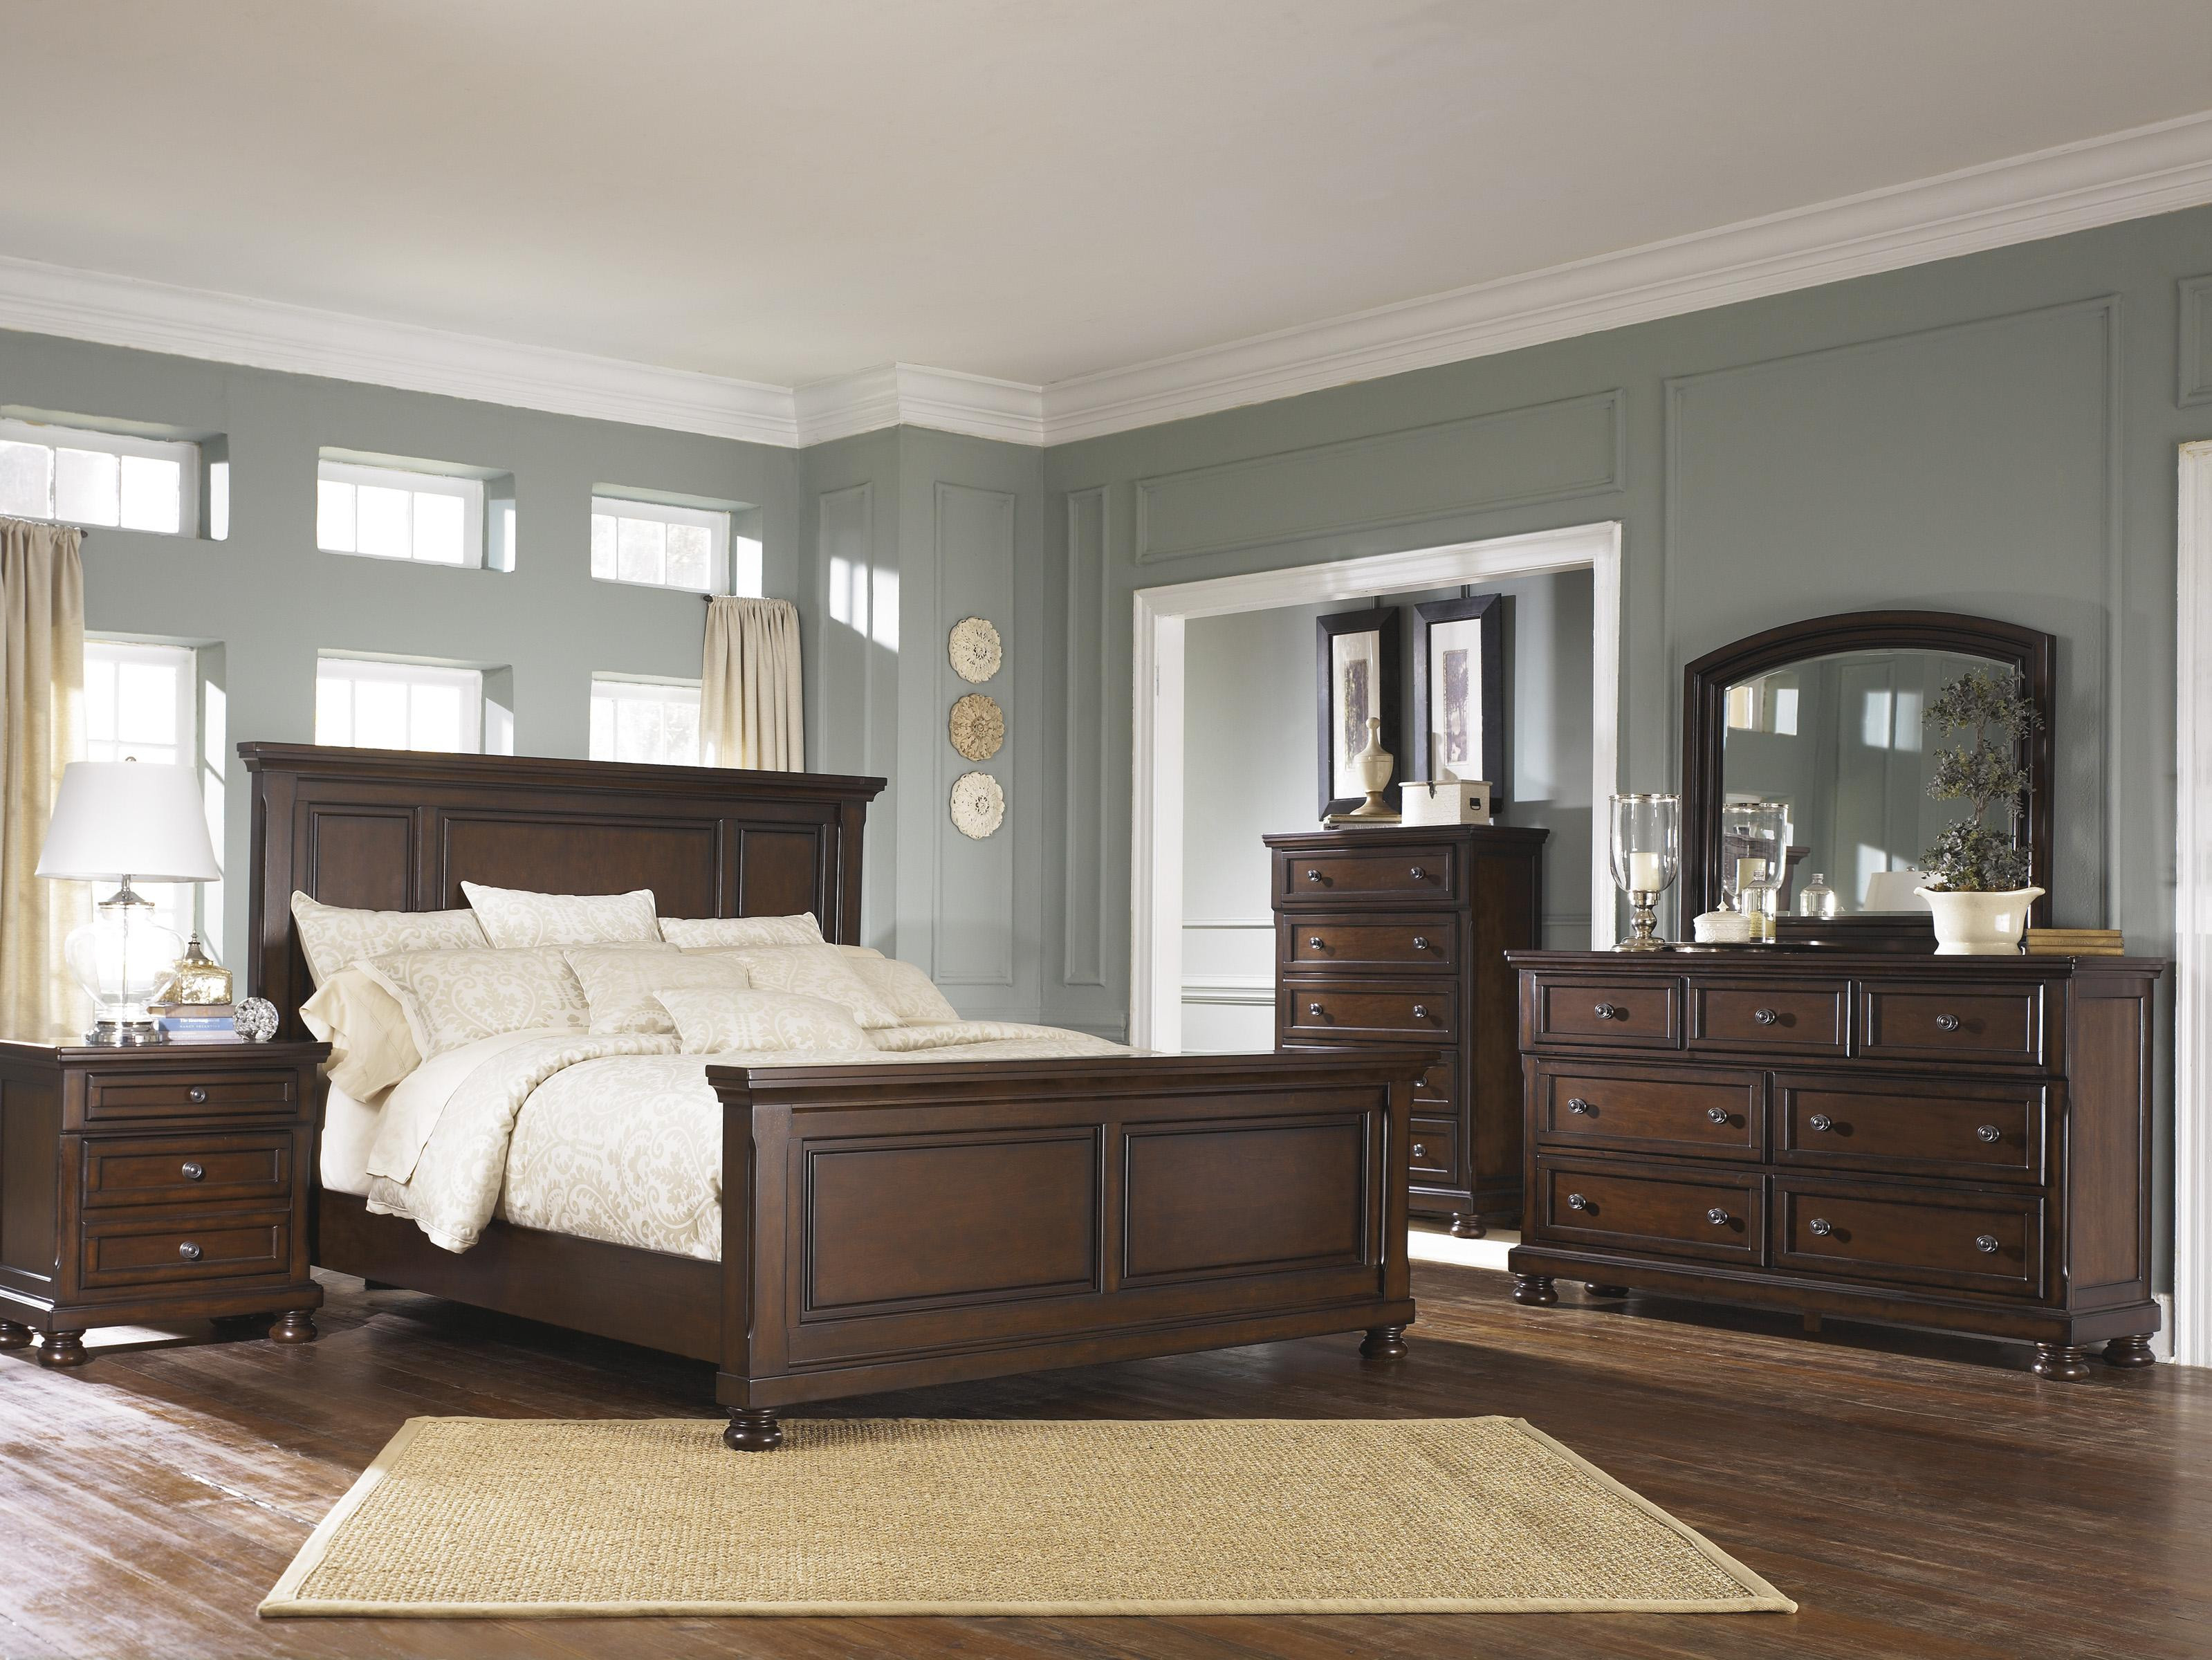 Best ideas about Ashley Bedroom Sets . Save or Pin Ashley Furniture Porter Queen Bedroom Group Now.